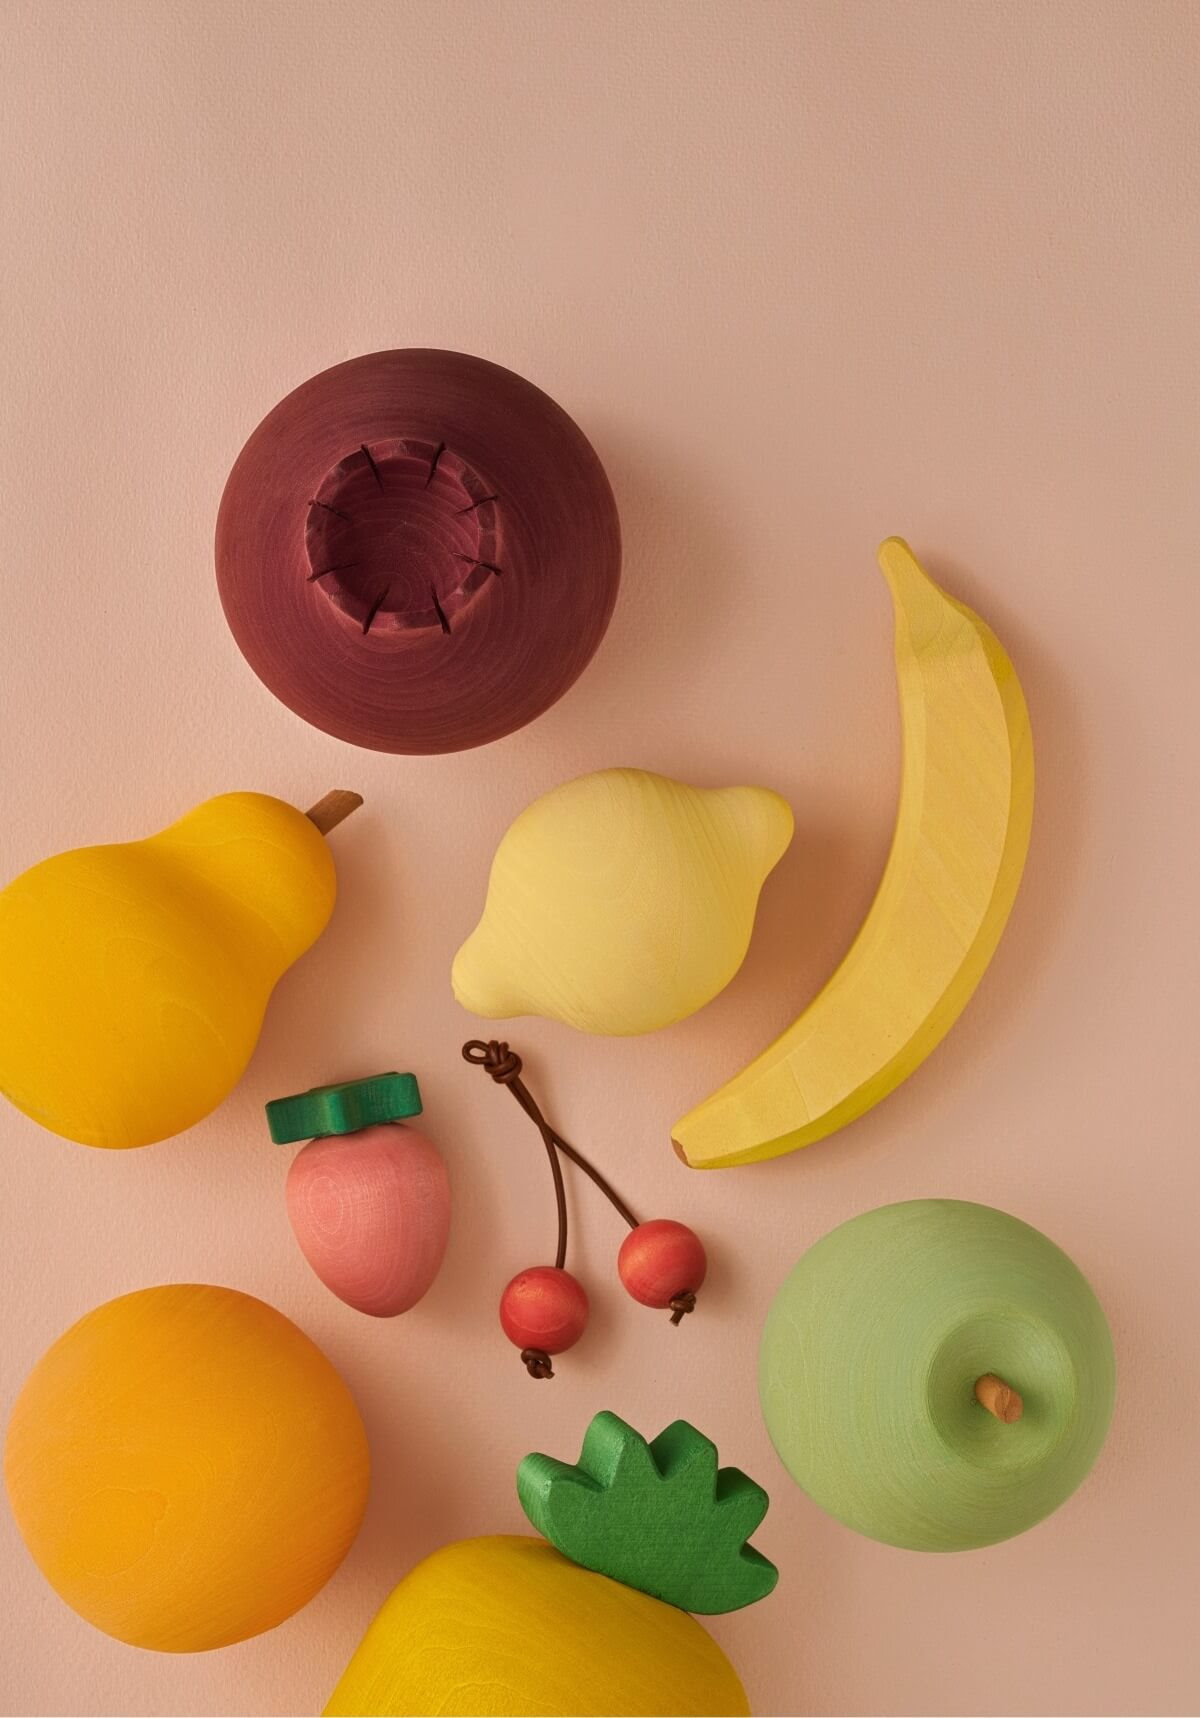 fruit-toy-set-in-wood